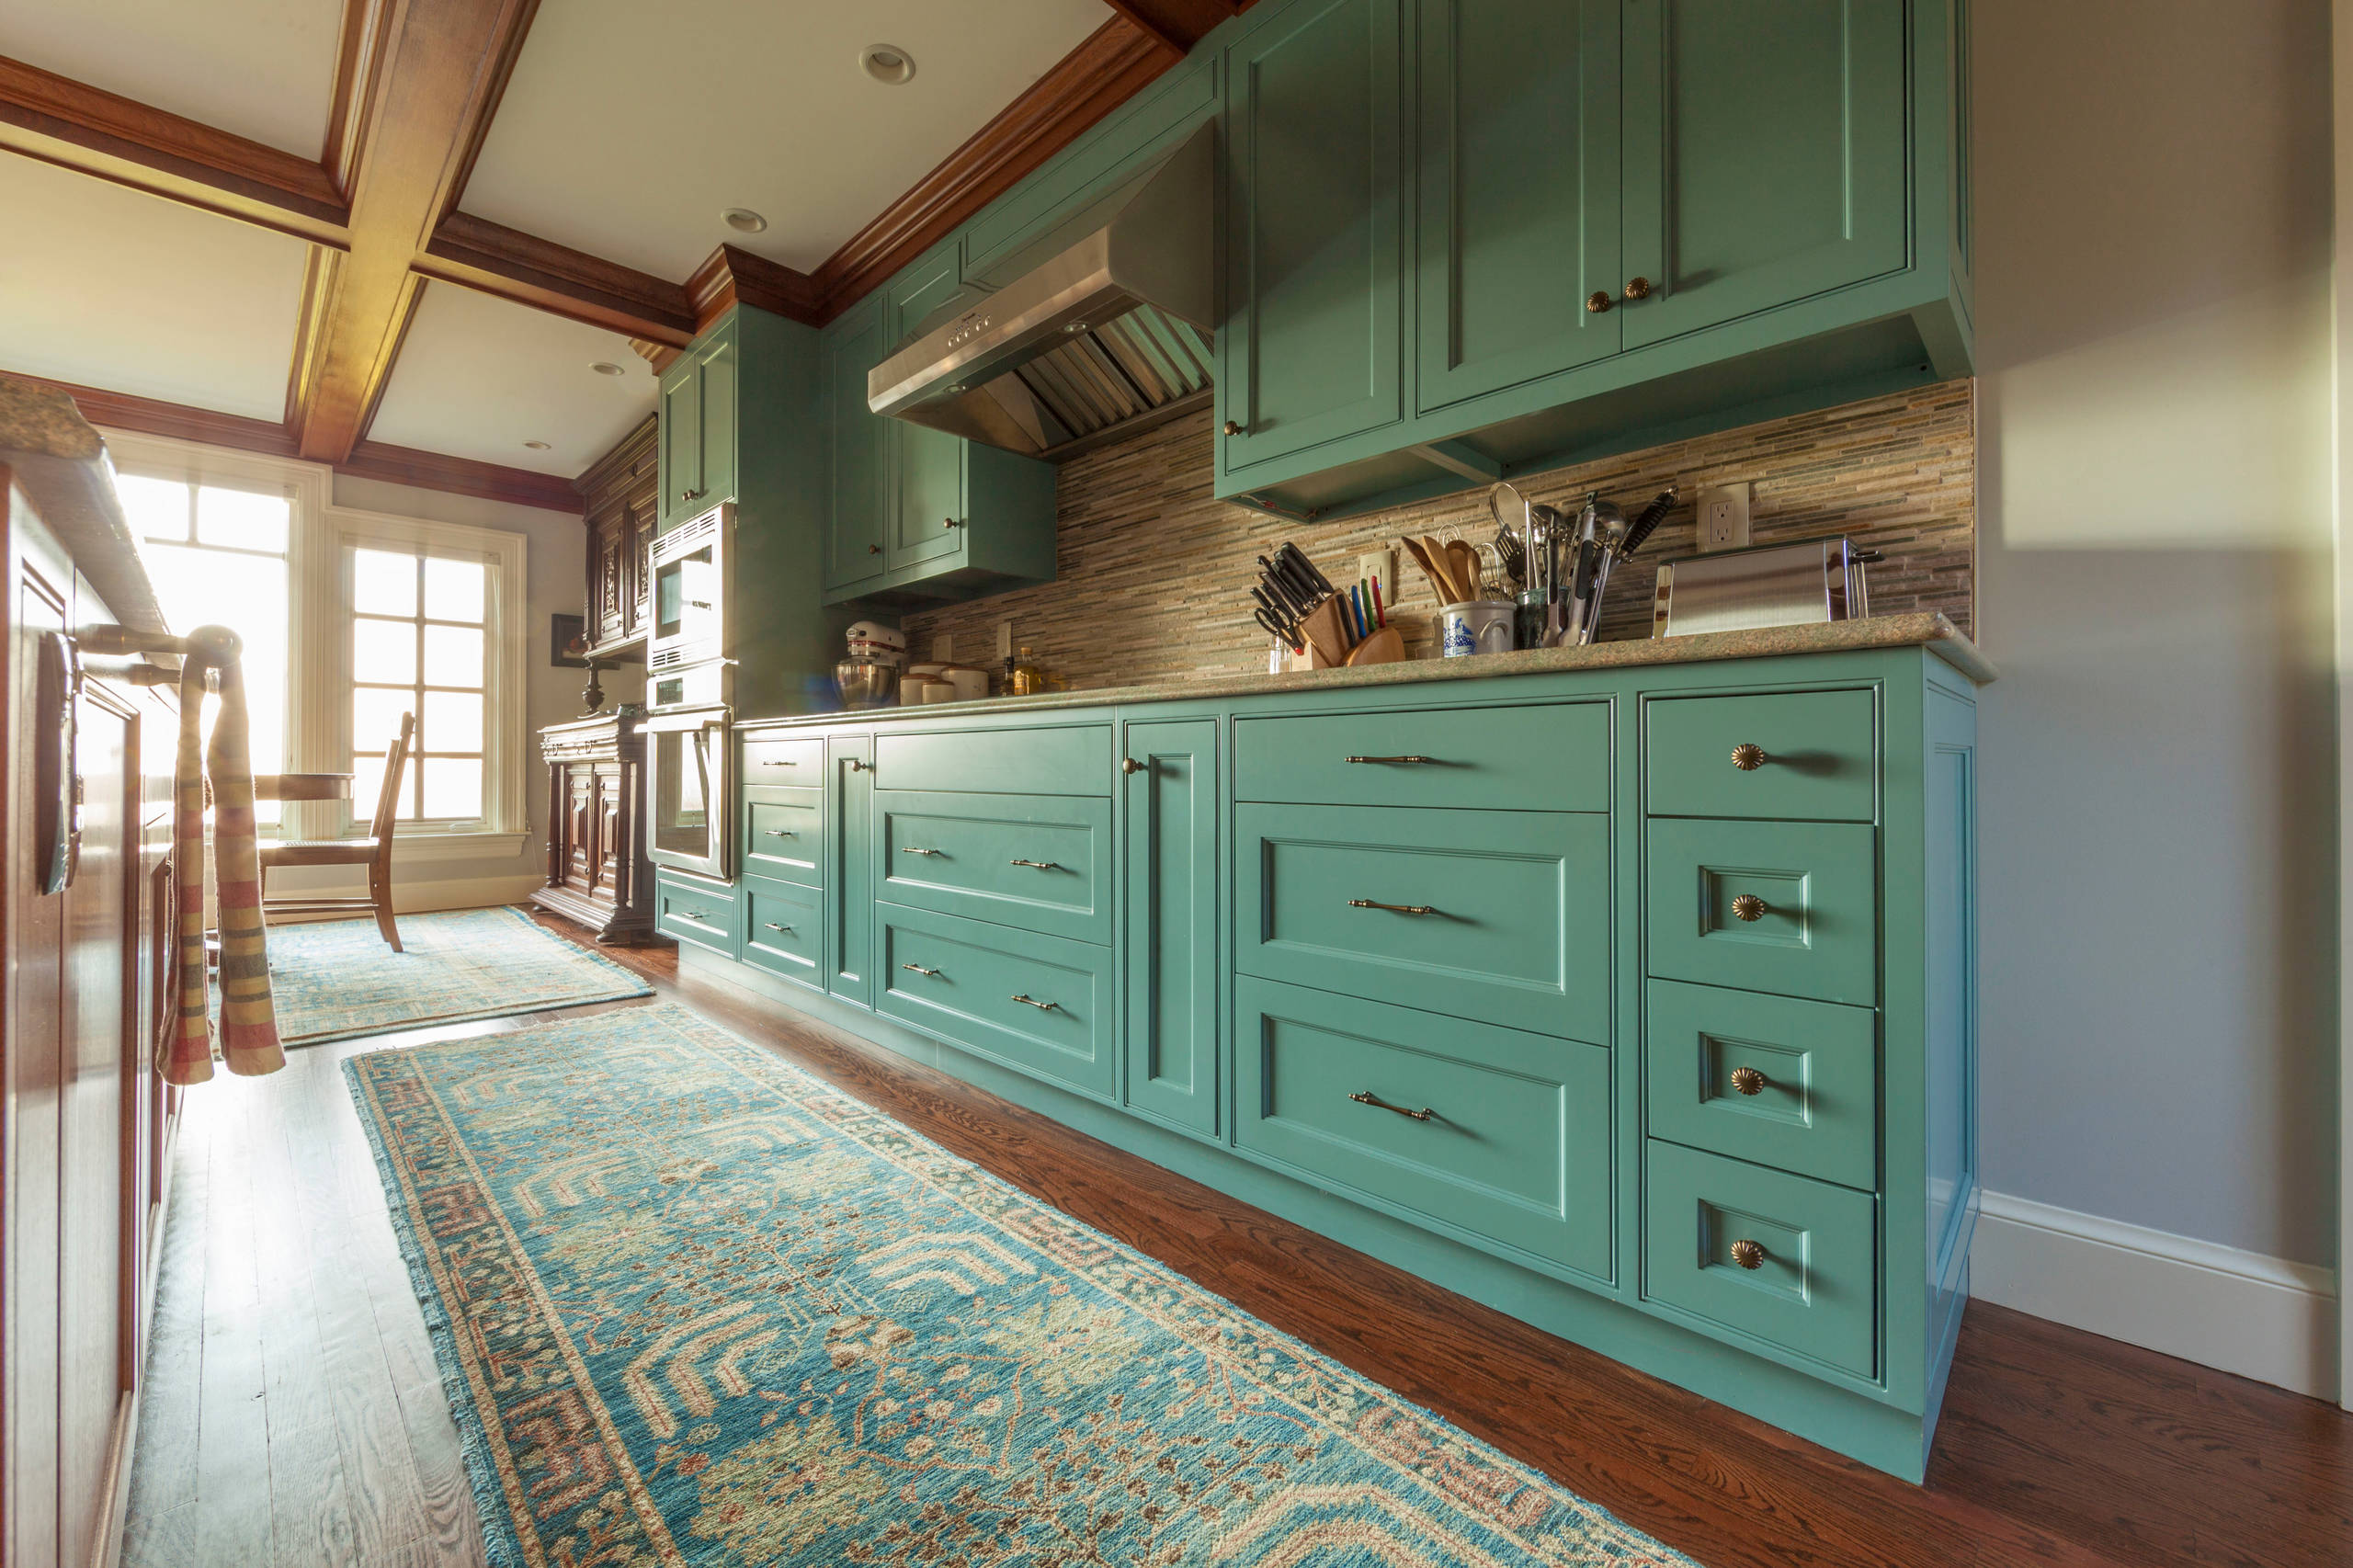 75 Beautiful Kitchen With Brown Backsplash And Turquoise Countertops Pictures Ideas May 2021 Houzz